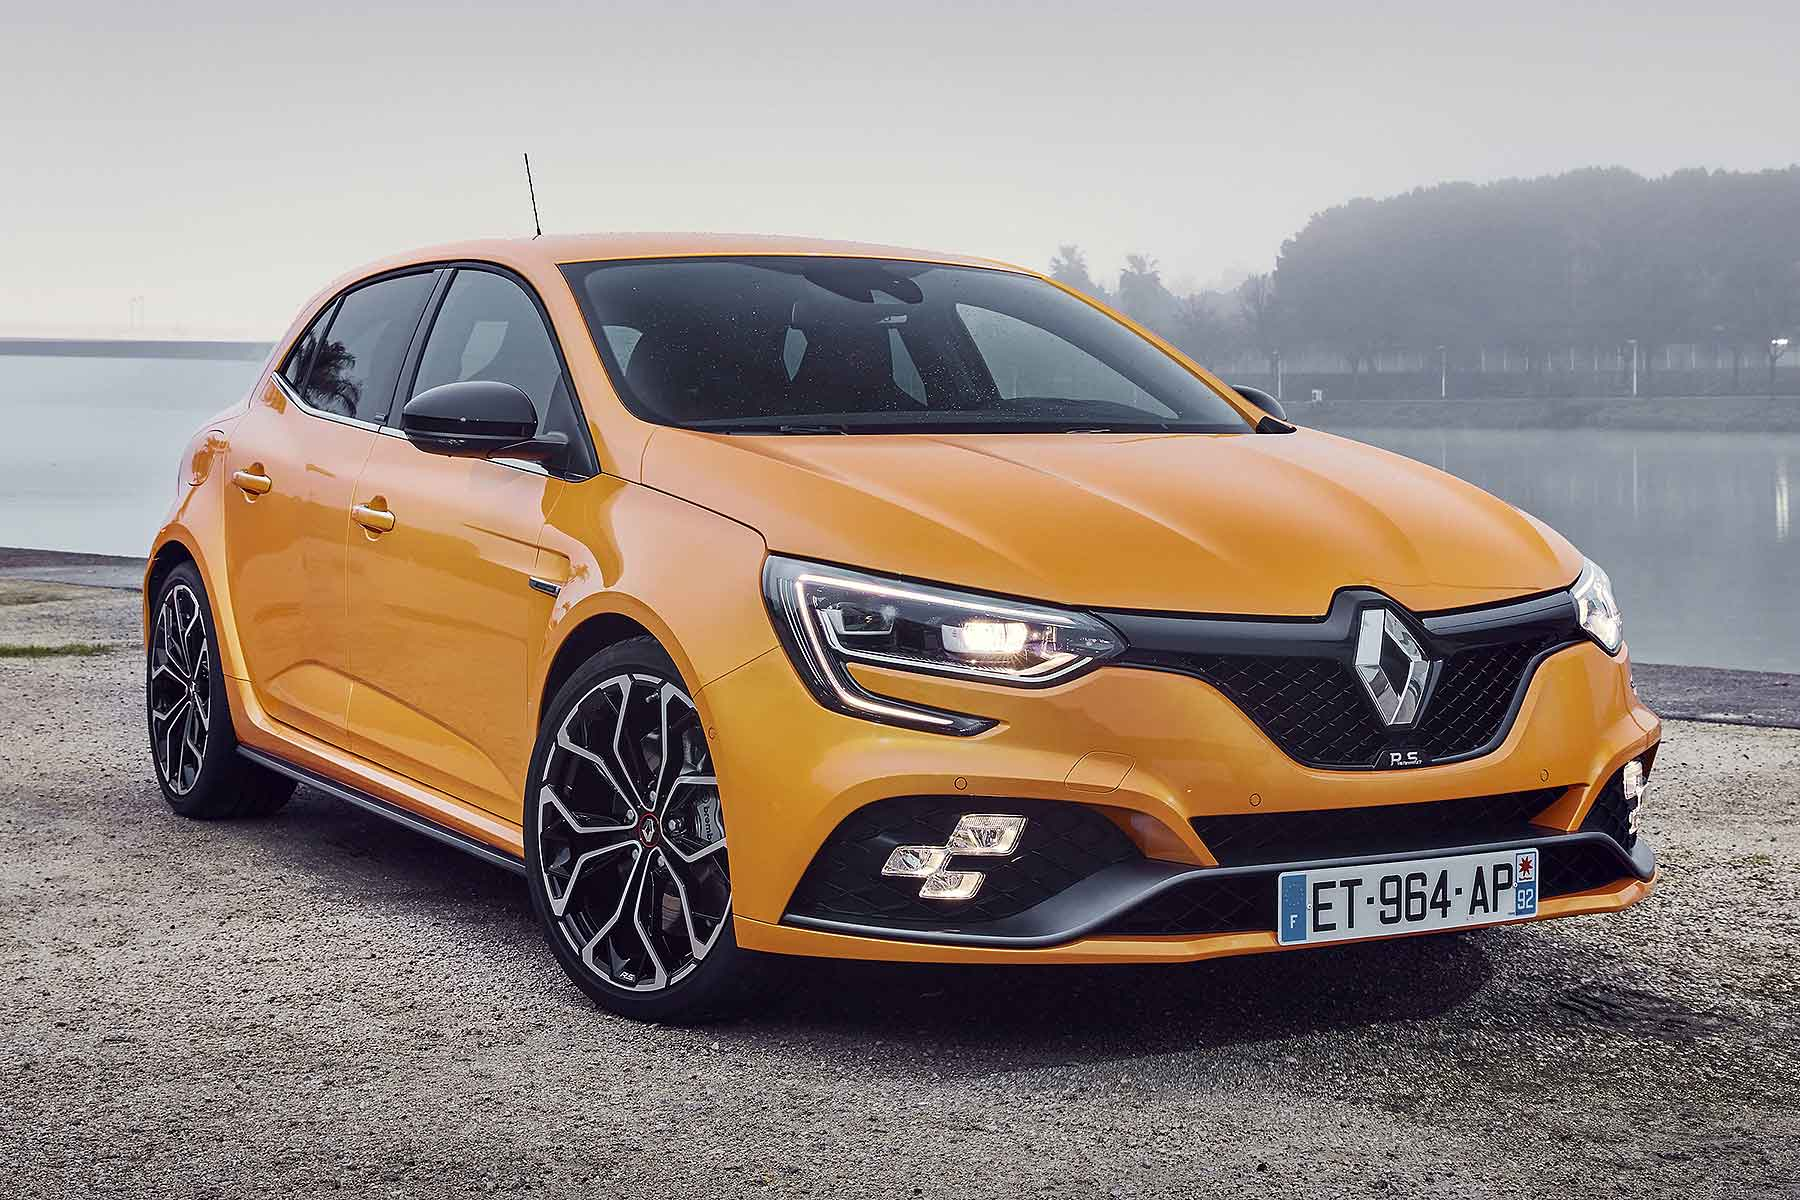 Renault megane rs price